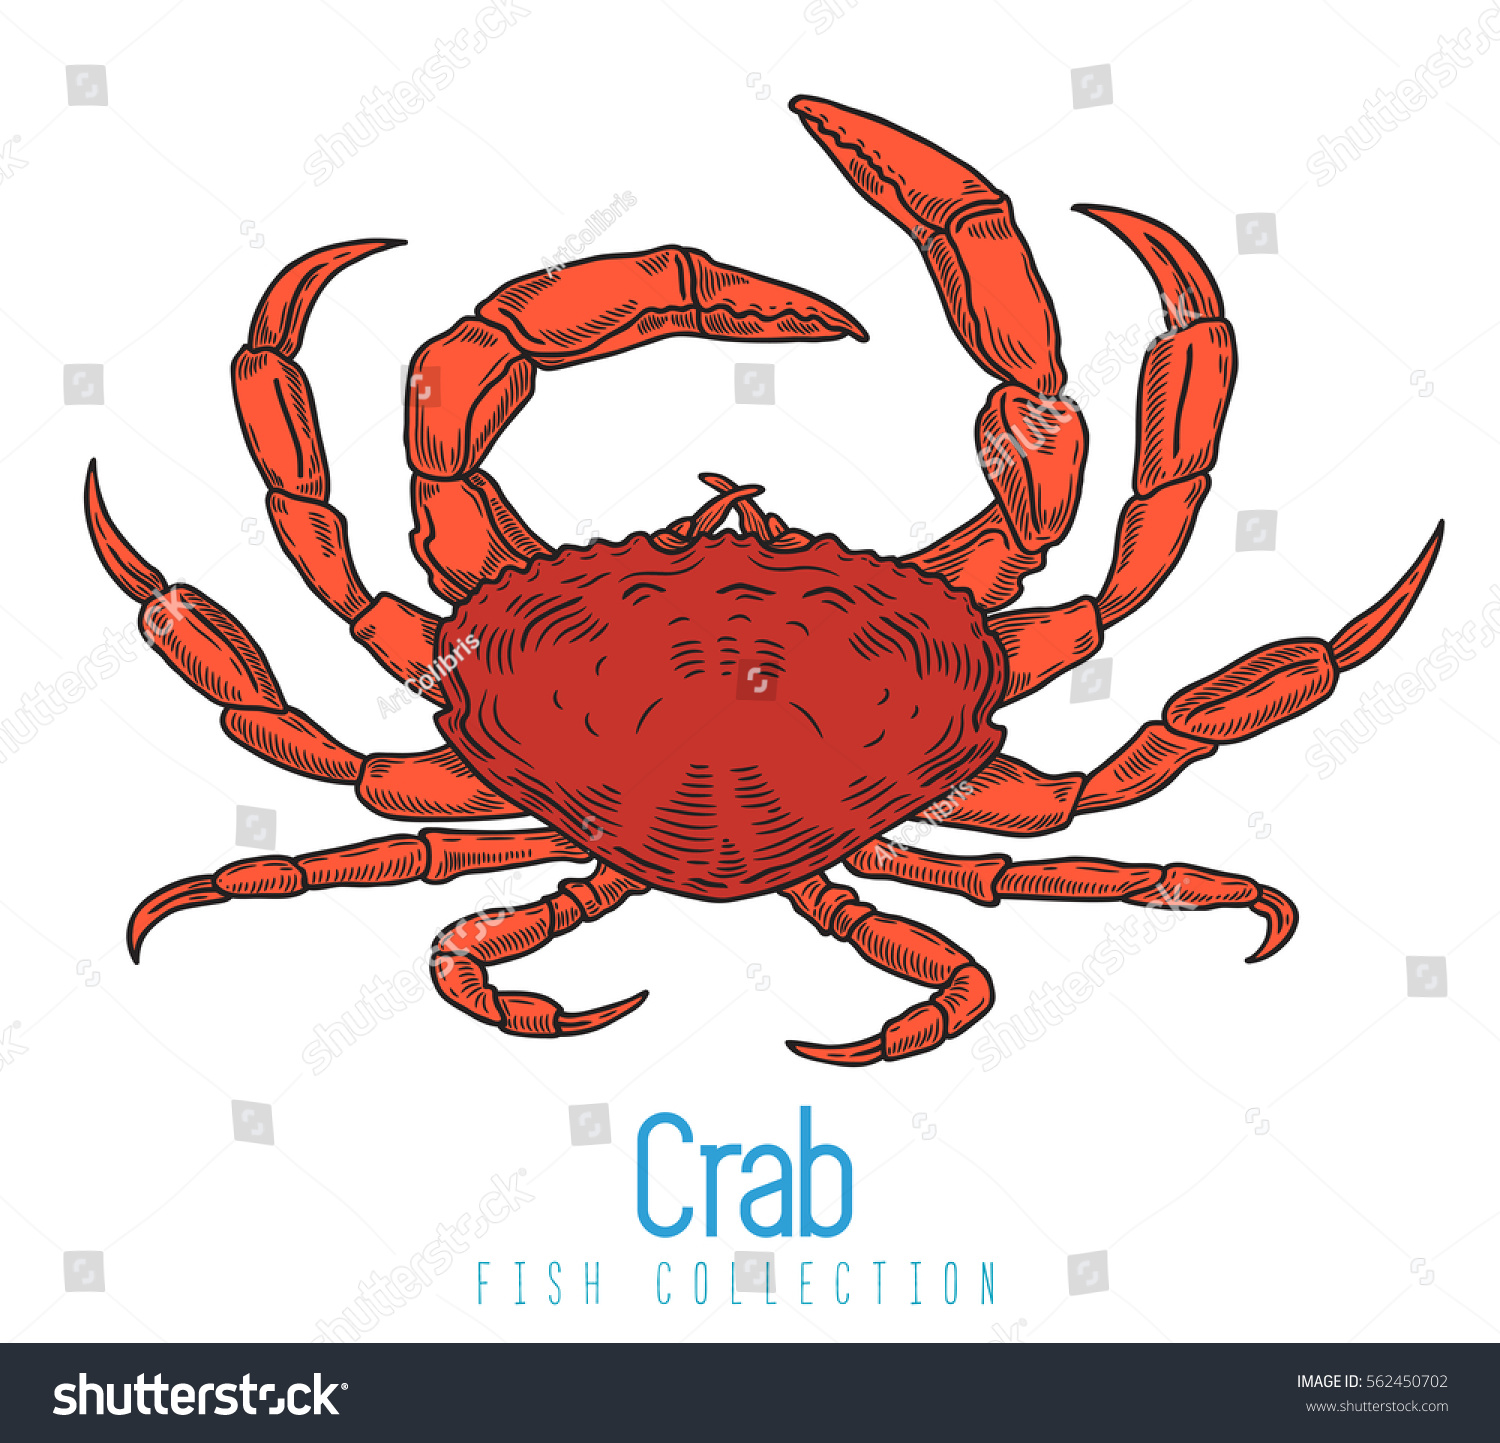 Crab Color Drawing On White Background Stock Vector HD (Royalty Free ...